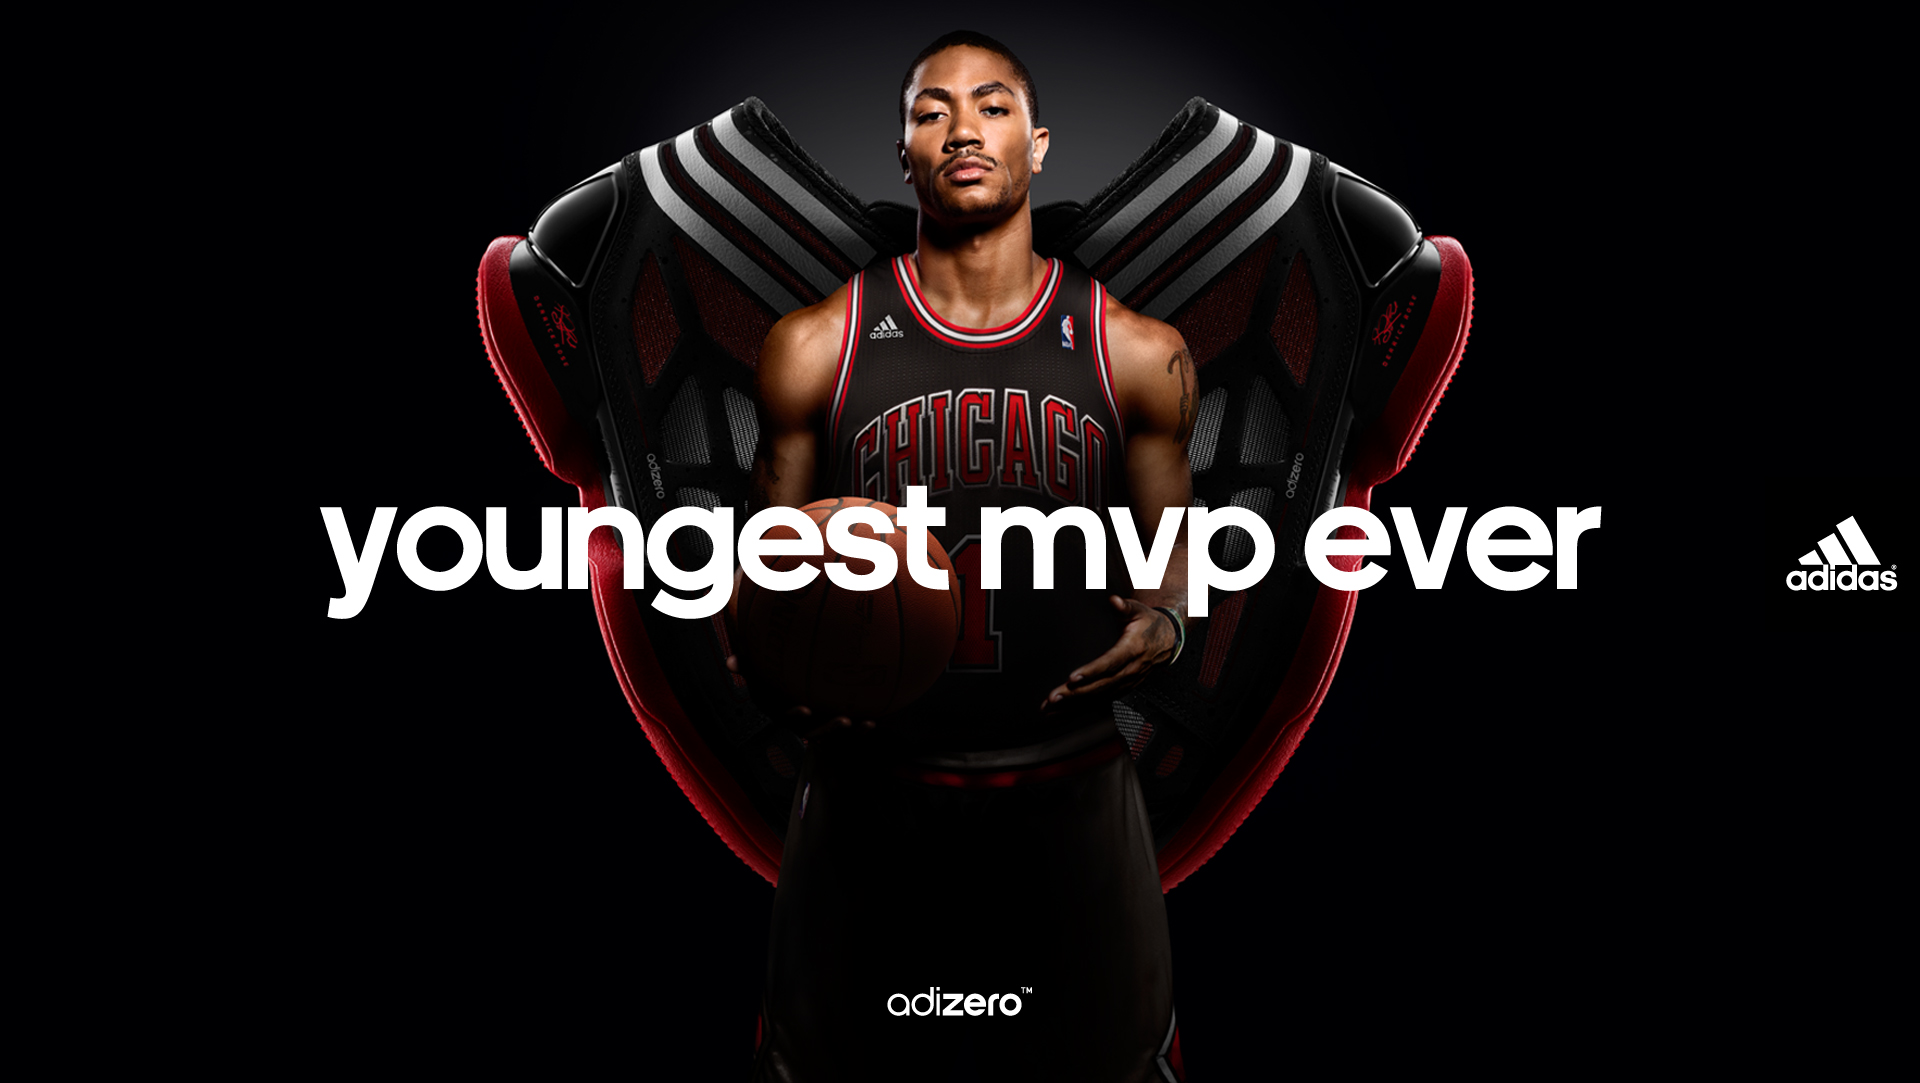 Derrick Rose Youngest Mvp Ever wallpaper 74678 1920x1083